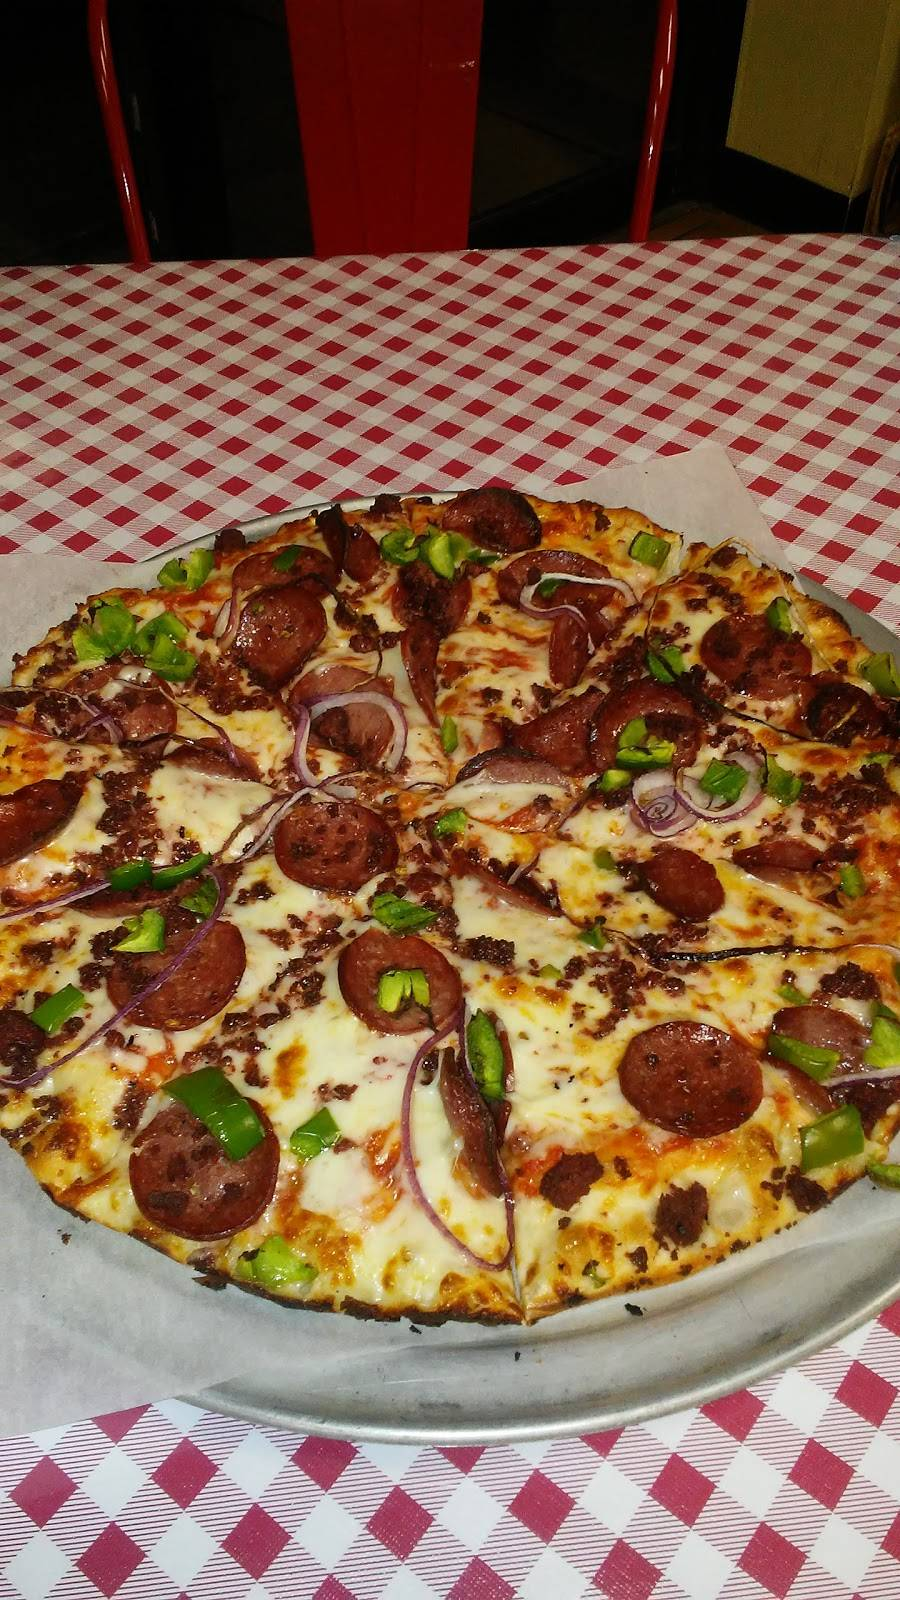 Big Als Pizzeria   meal delivery   27344 Ford Rd, Dearborn Heights, MI 48127, USA   3132783411 OR +1 313-278-3411